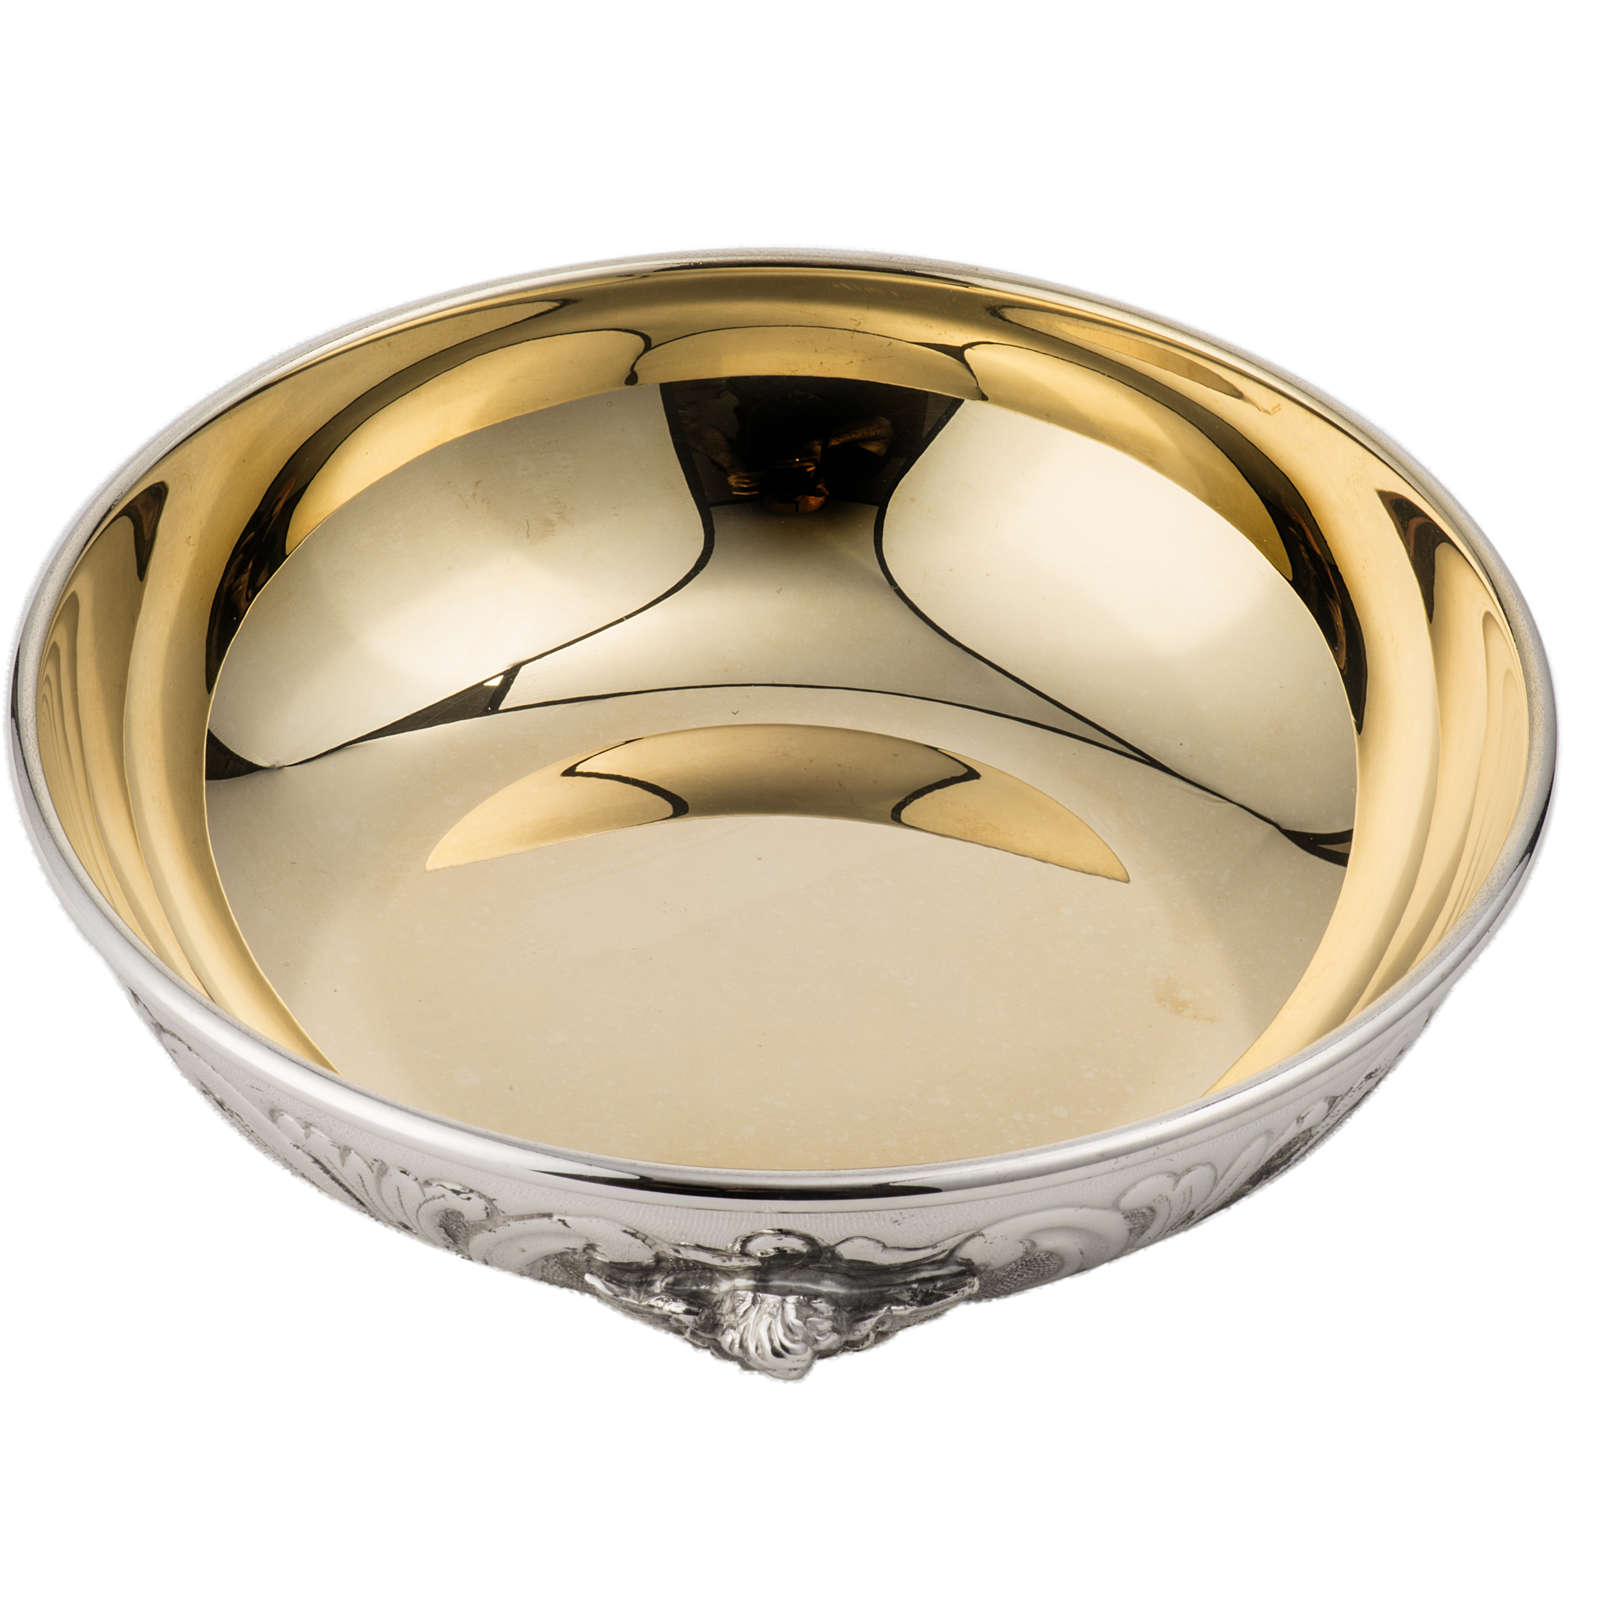 Bowl Paten in silver 800 with angel decoration 4